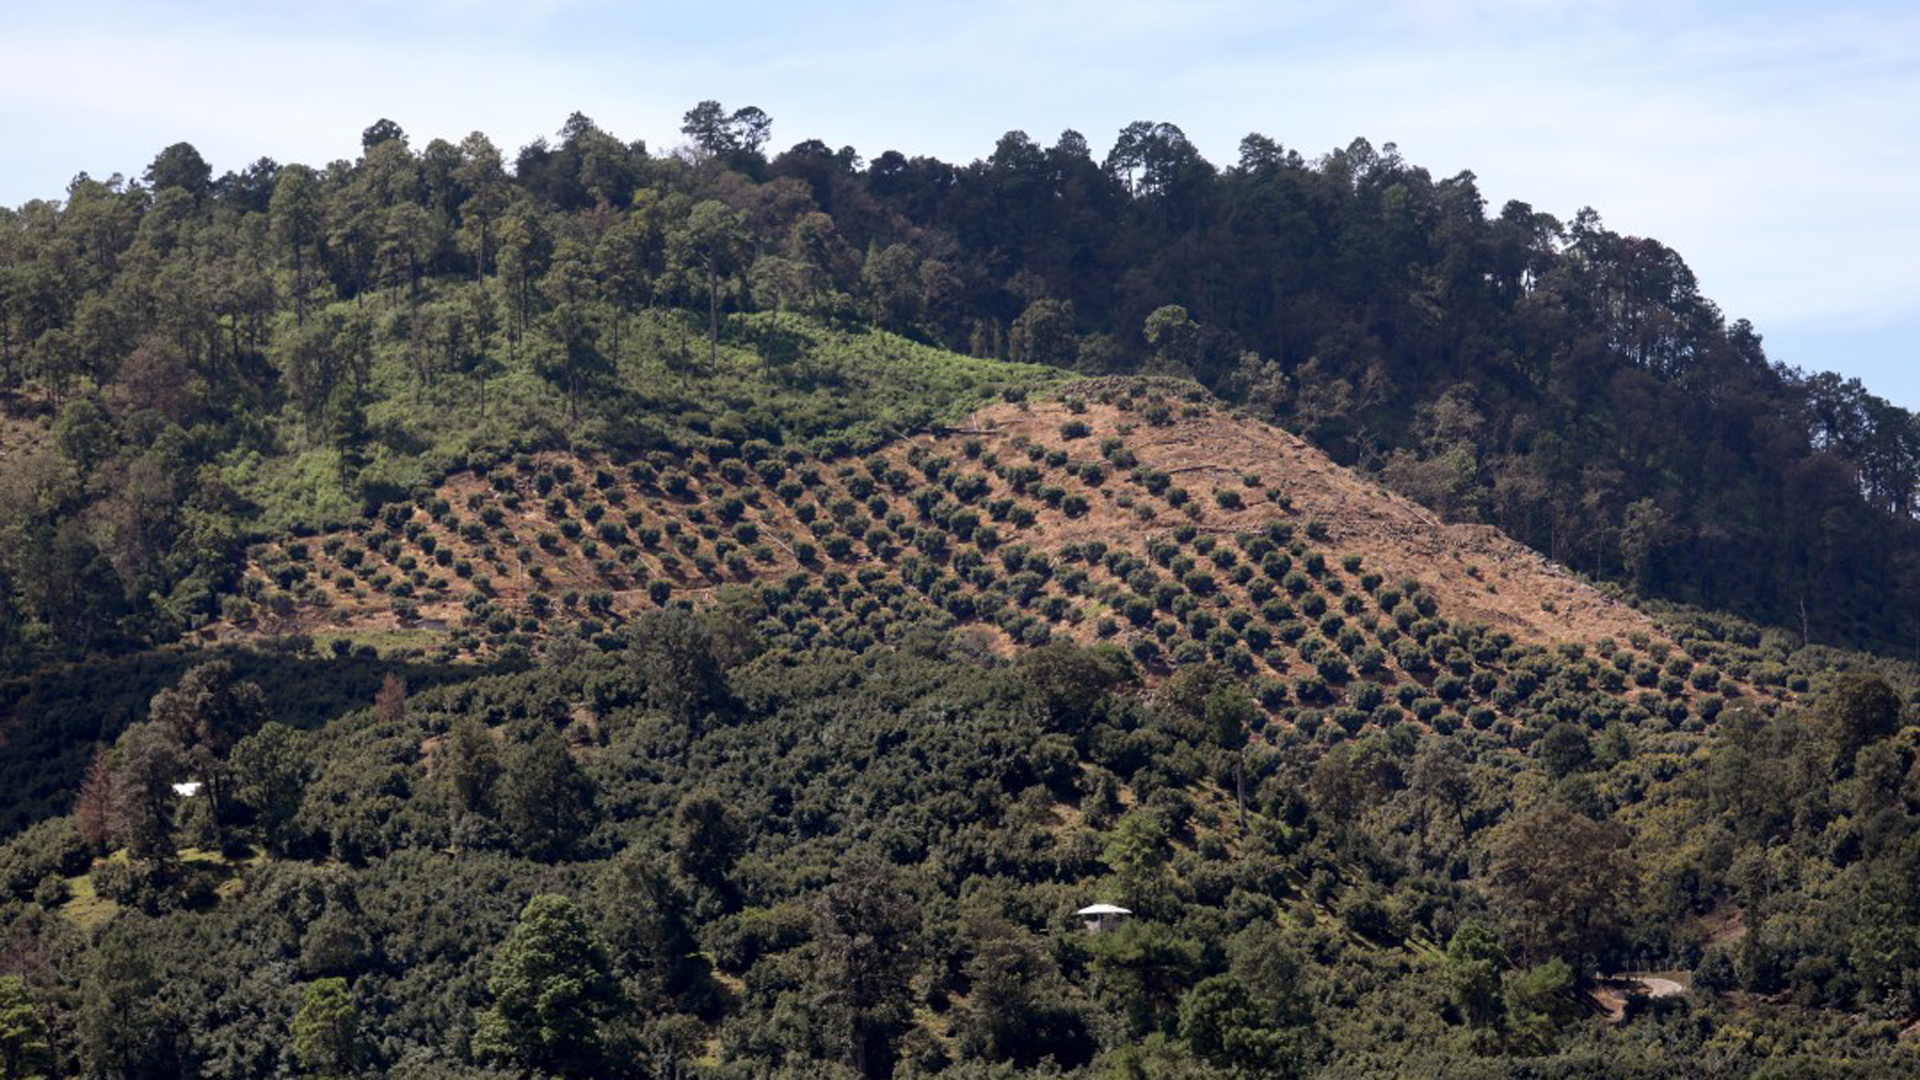 Avocado groves carved into the hillside outside the city of Uruapan, where cartels have evolved beyond drug trafficking and now prey on the avocado trade. (Credit: Gary Coronado / Los Angeles Times)